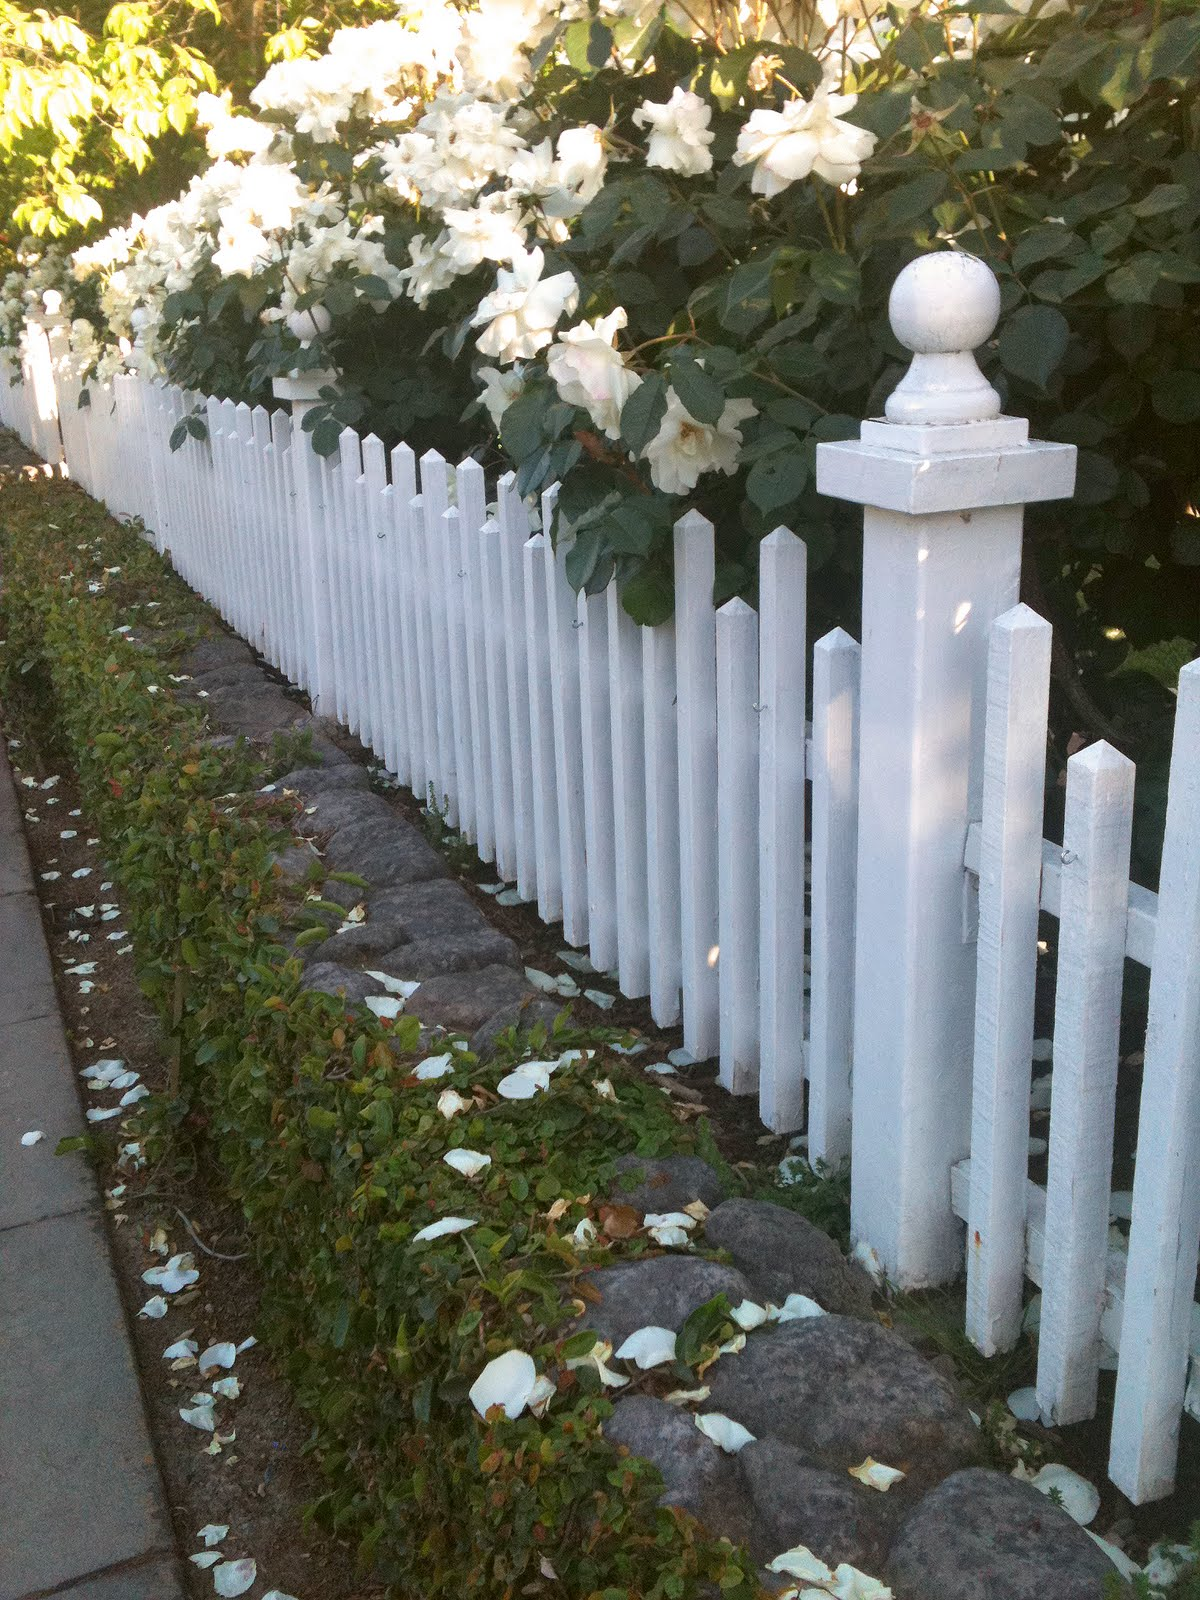 My Romantic Home: White Picket Fence Love